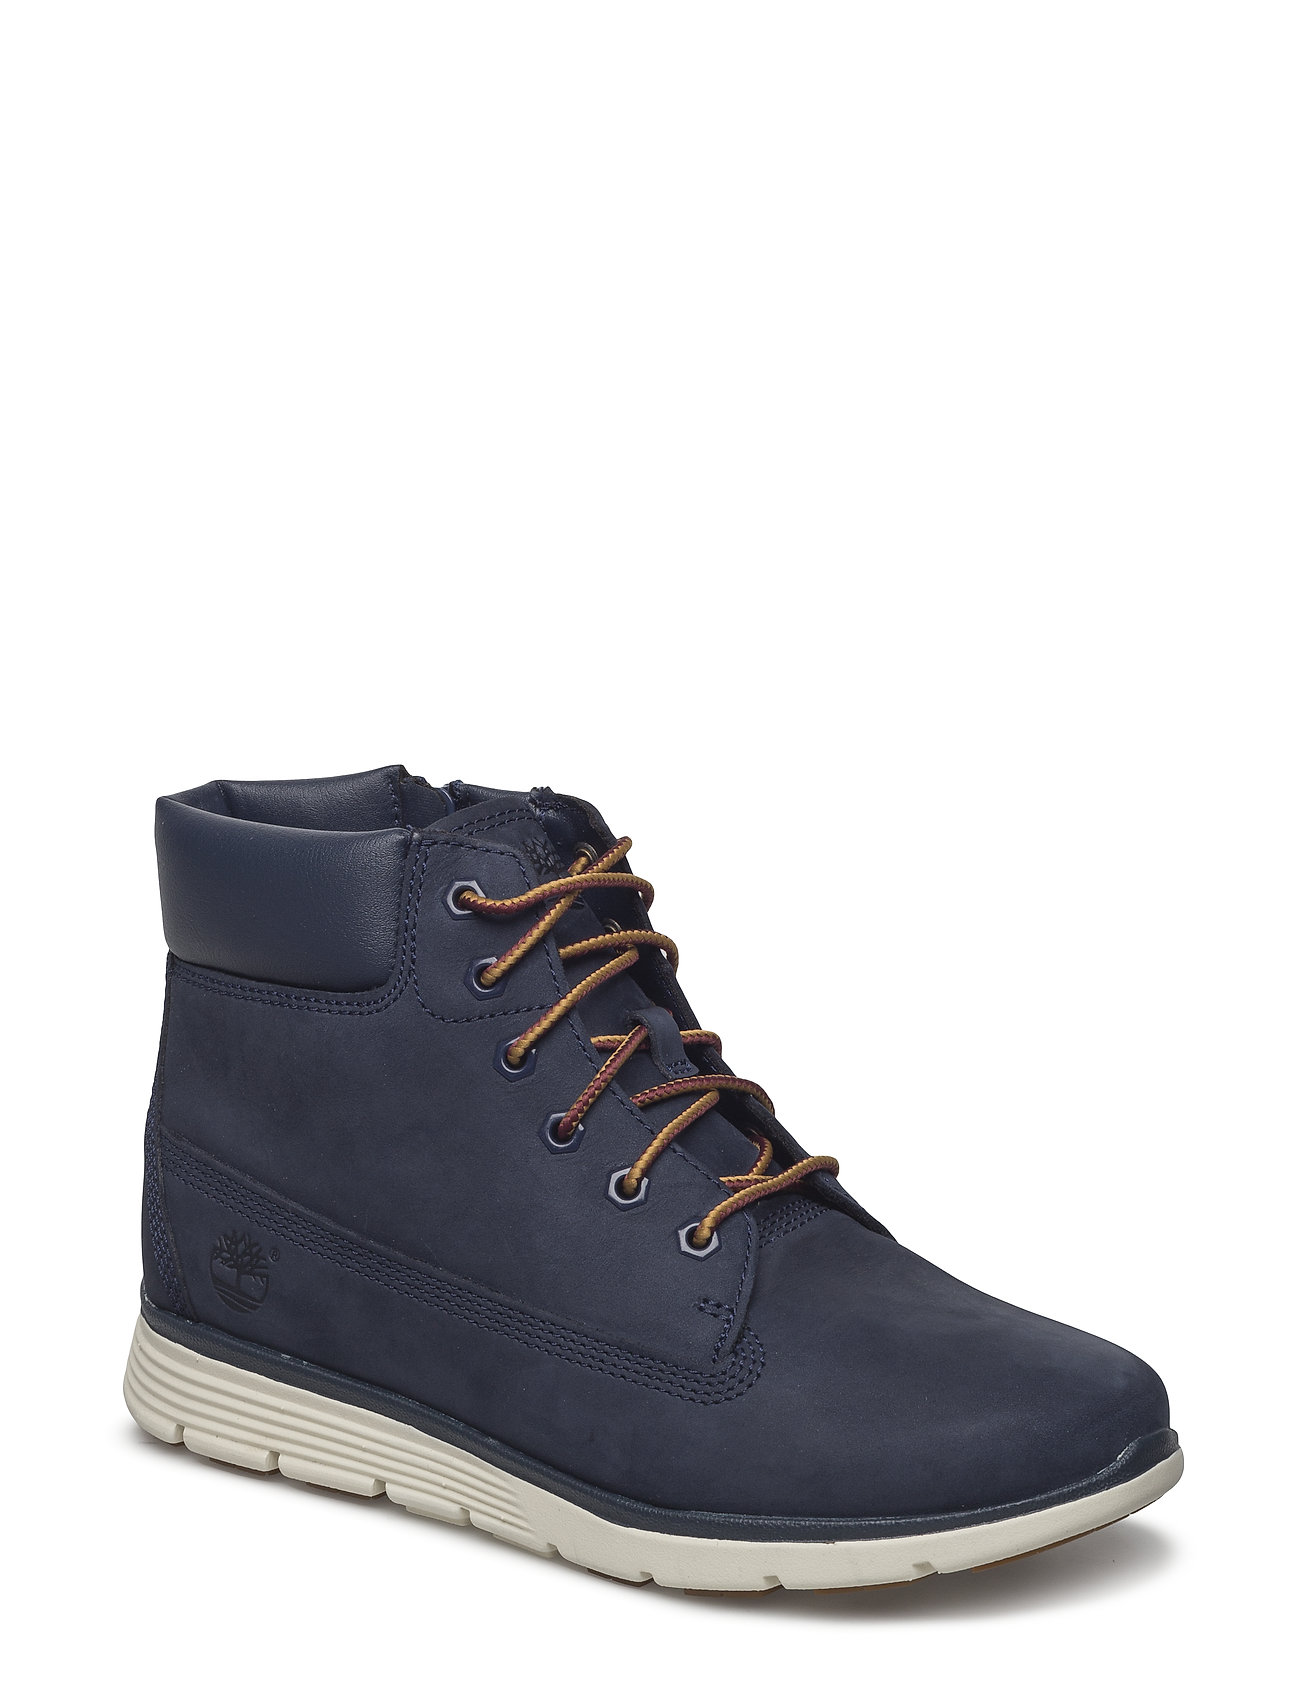 Timberland Killington 6 In - BLACK IRIS